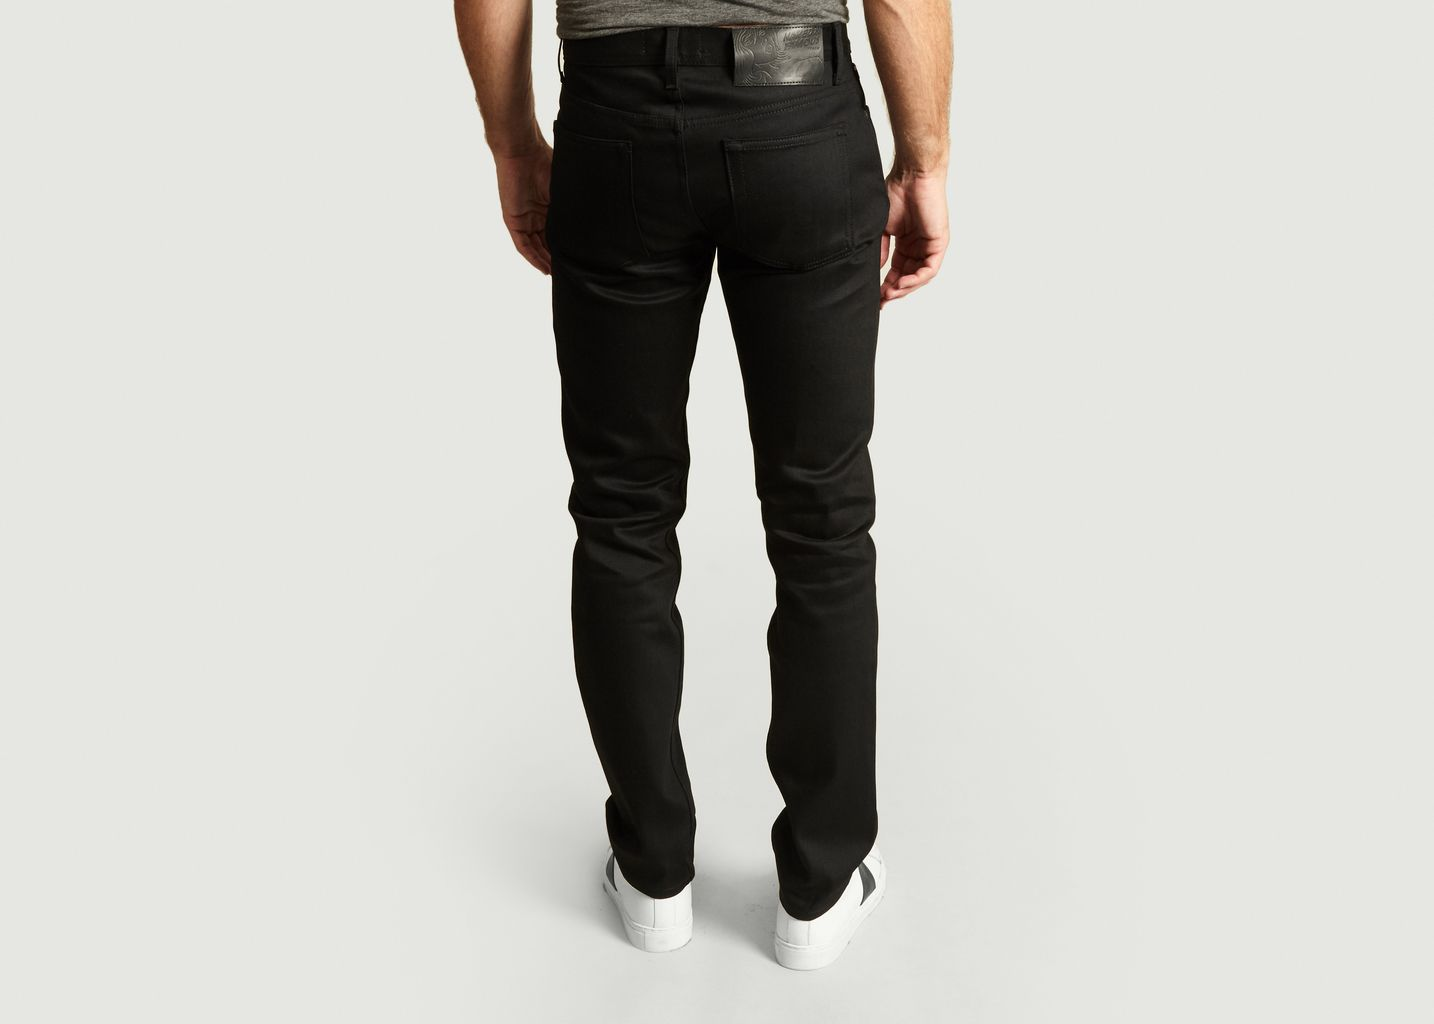 Jean Weird Guy Selvedge - Naked and Famous